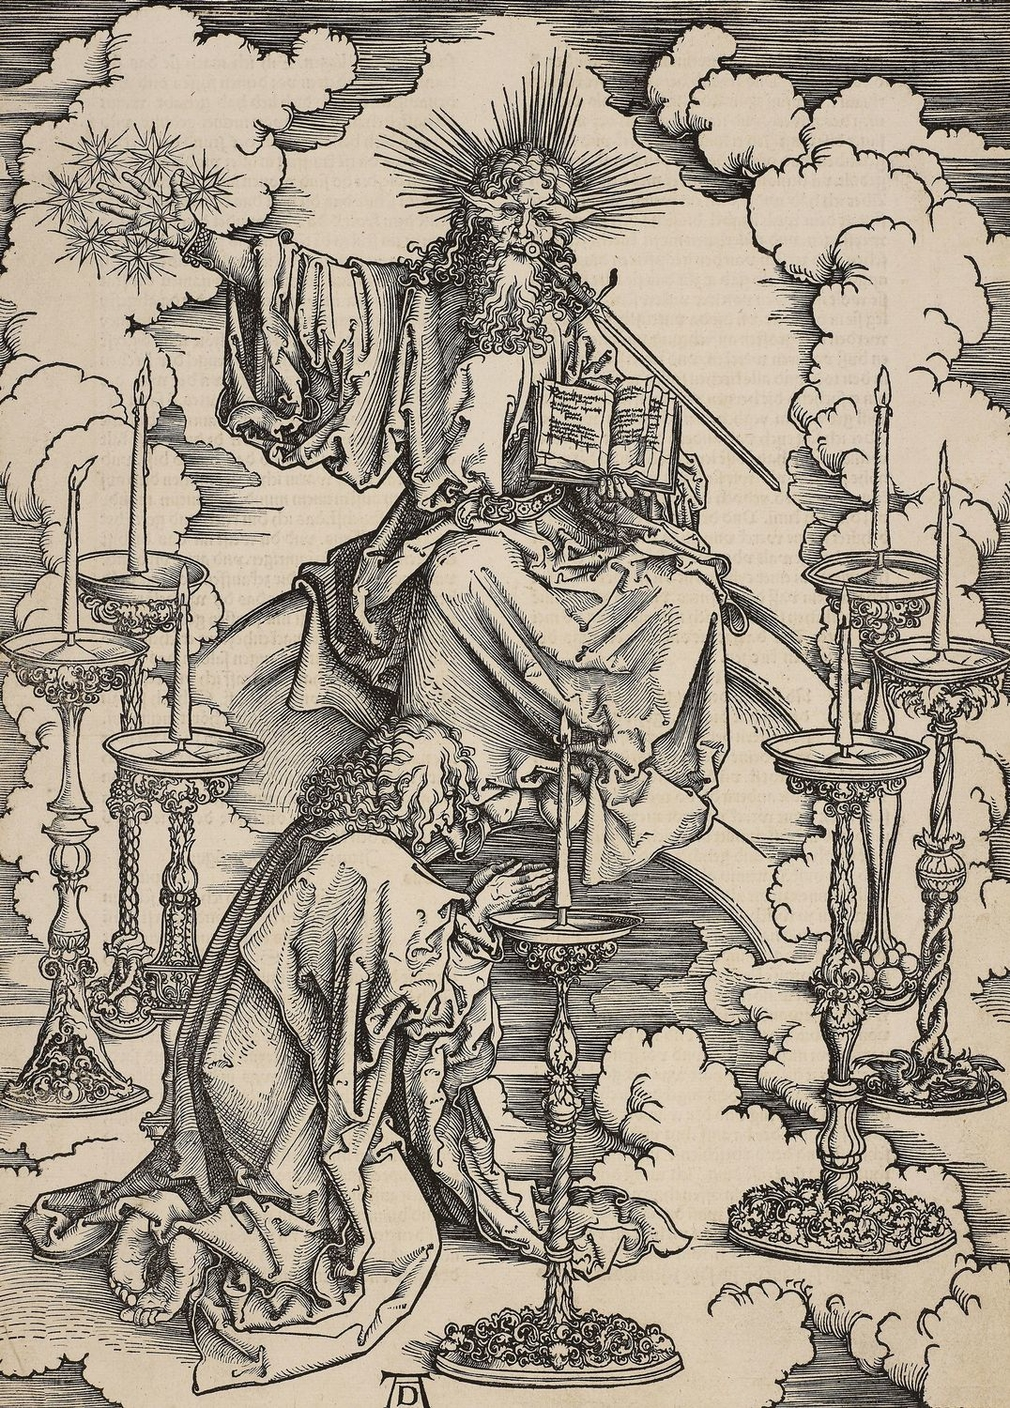 A woodcut from Dürer's 'Apocalypse' showing the Vision of the Seven Candlesticks.The Book of the Revelation of St John, commonly known as the Apocalypse, was a popular subject for illustration throughout the Middle Ages, series of images appear